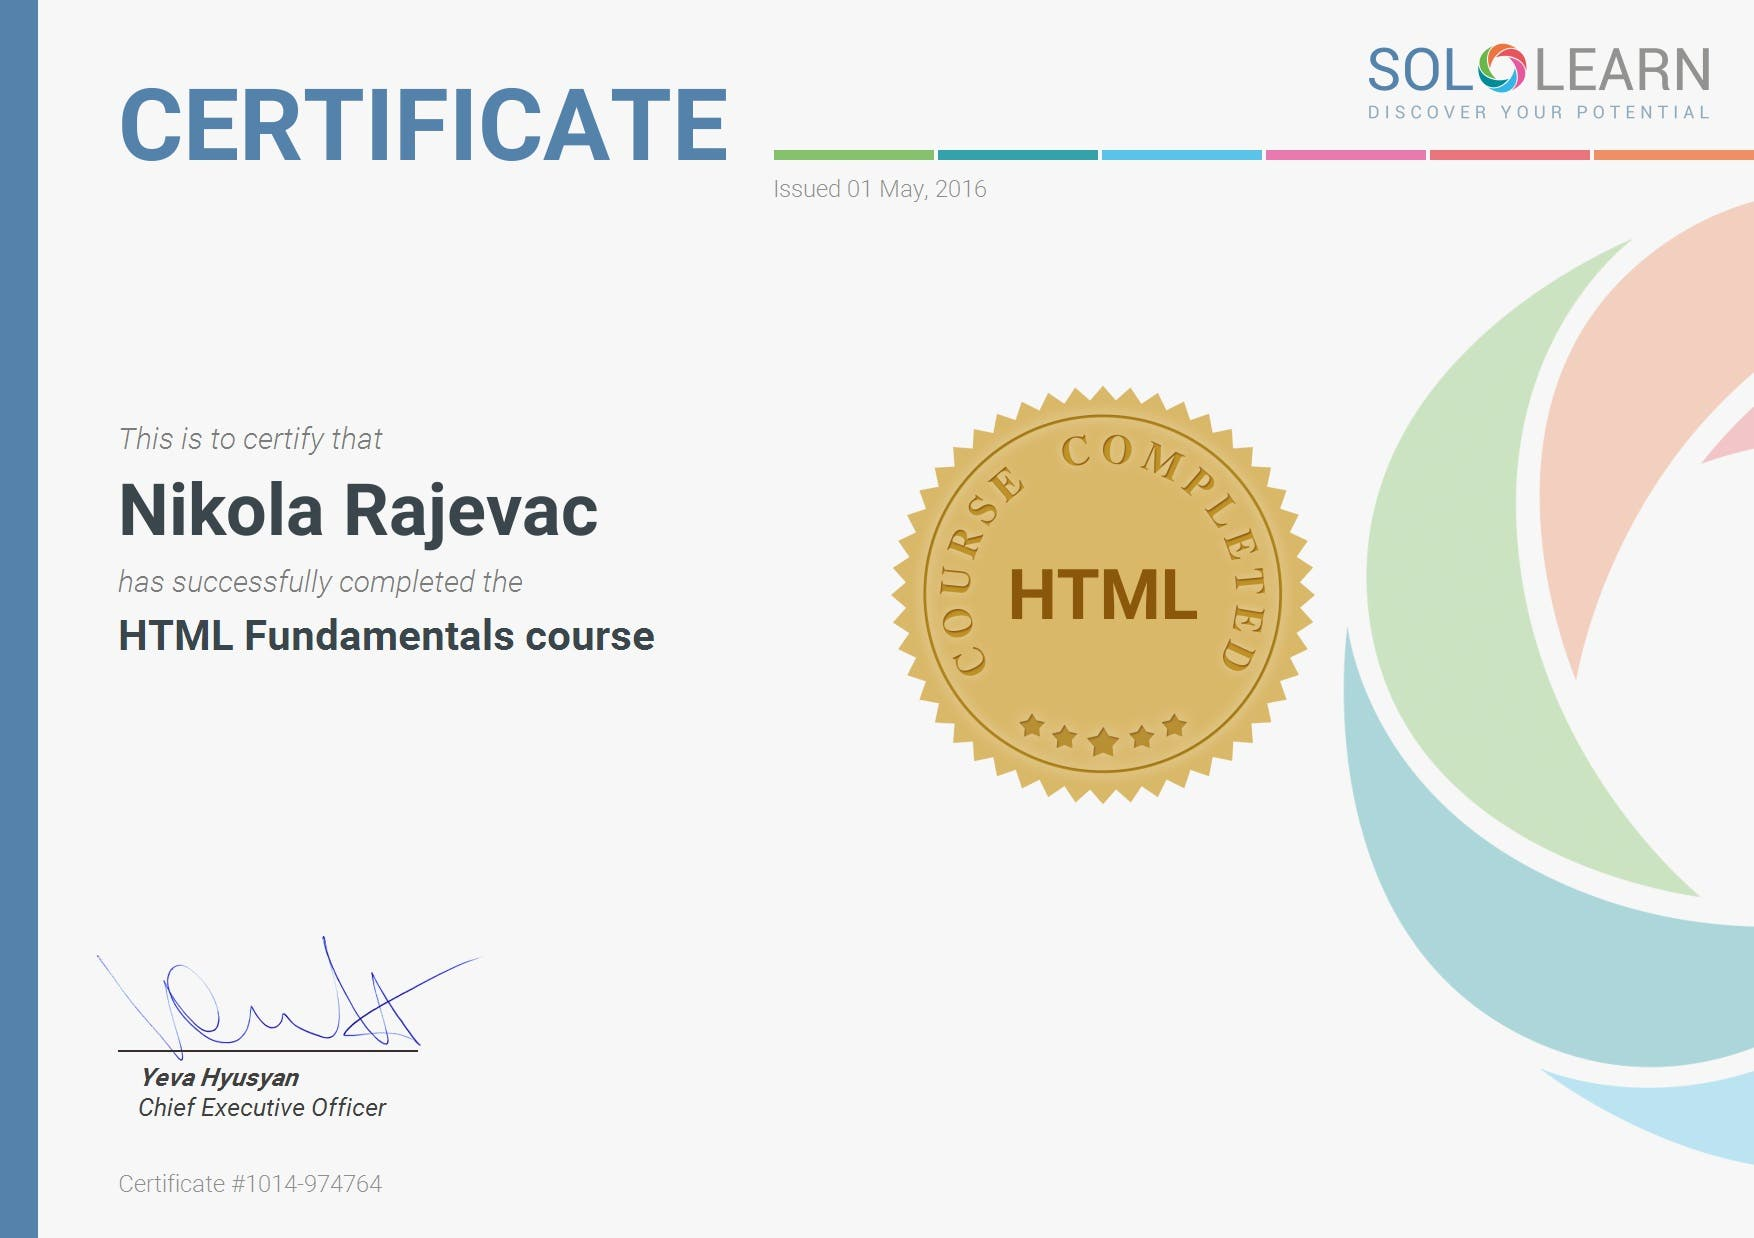 A small HTML course